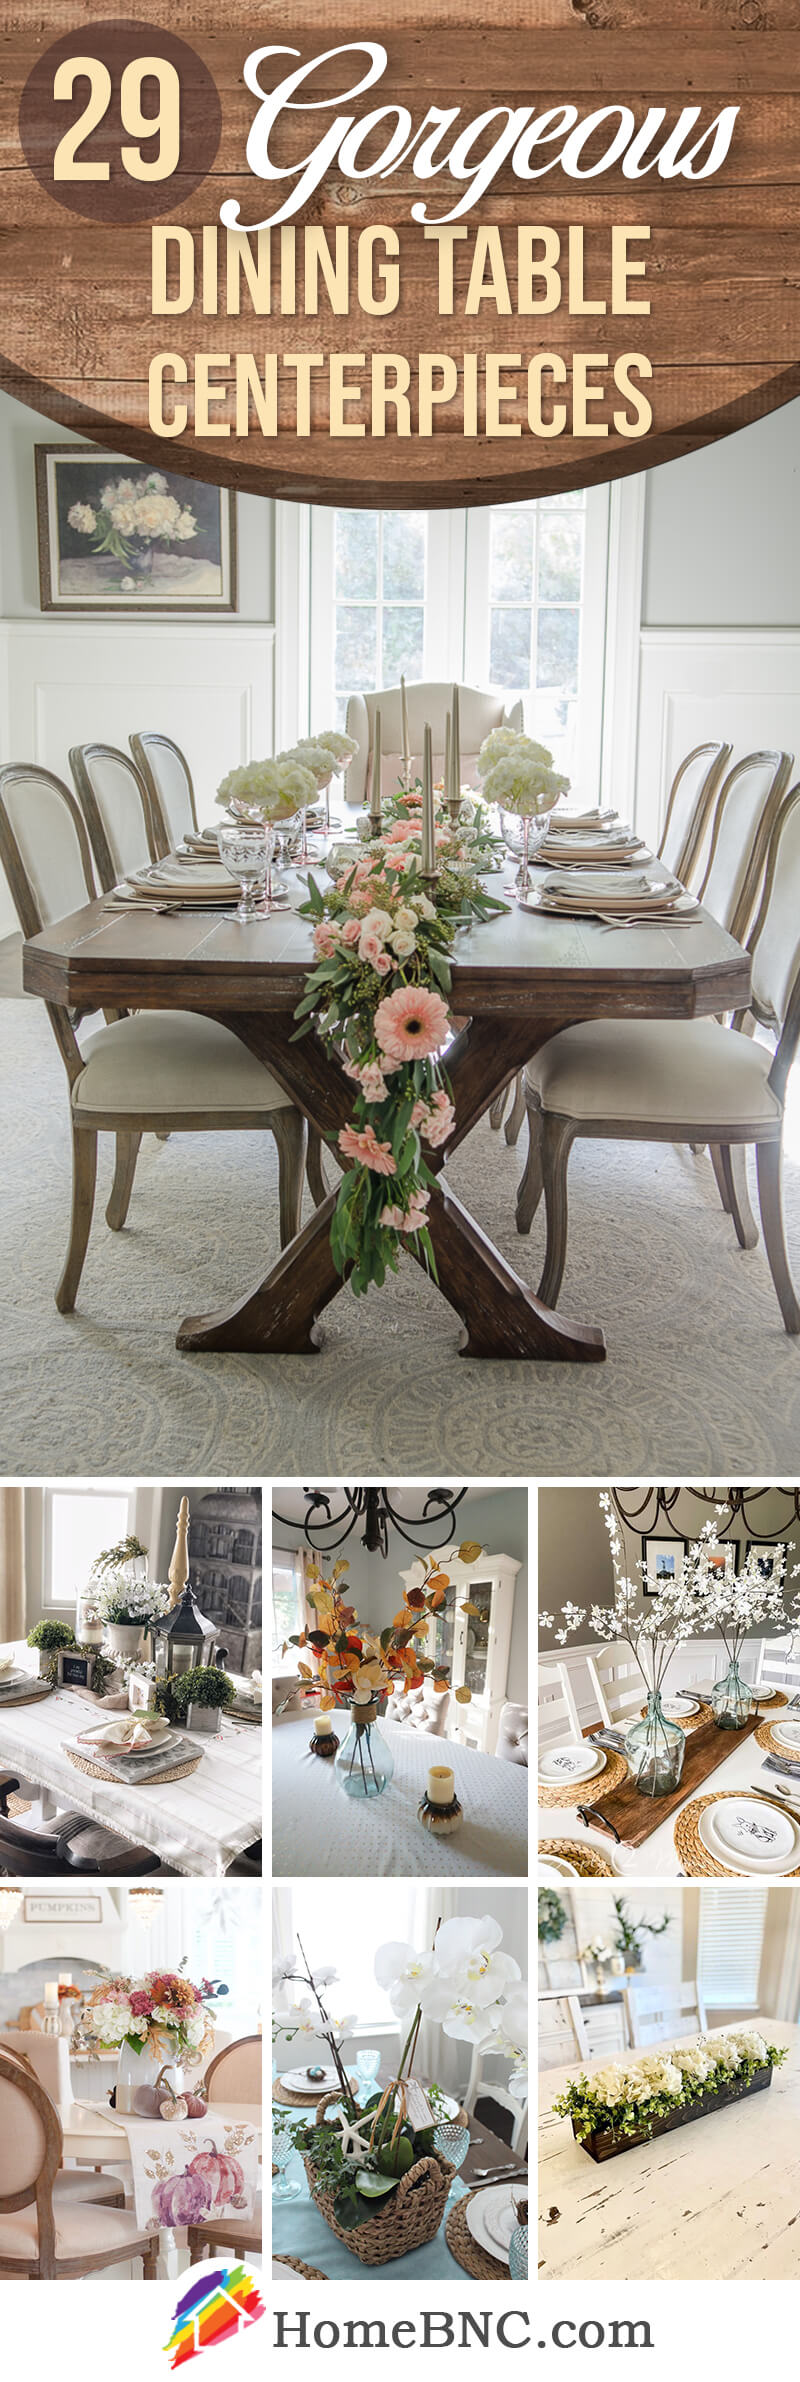 Best Dining Table Centerpieces